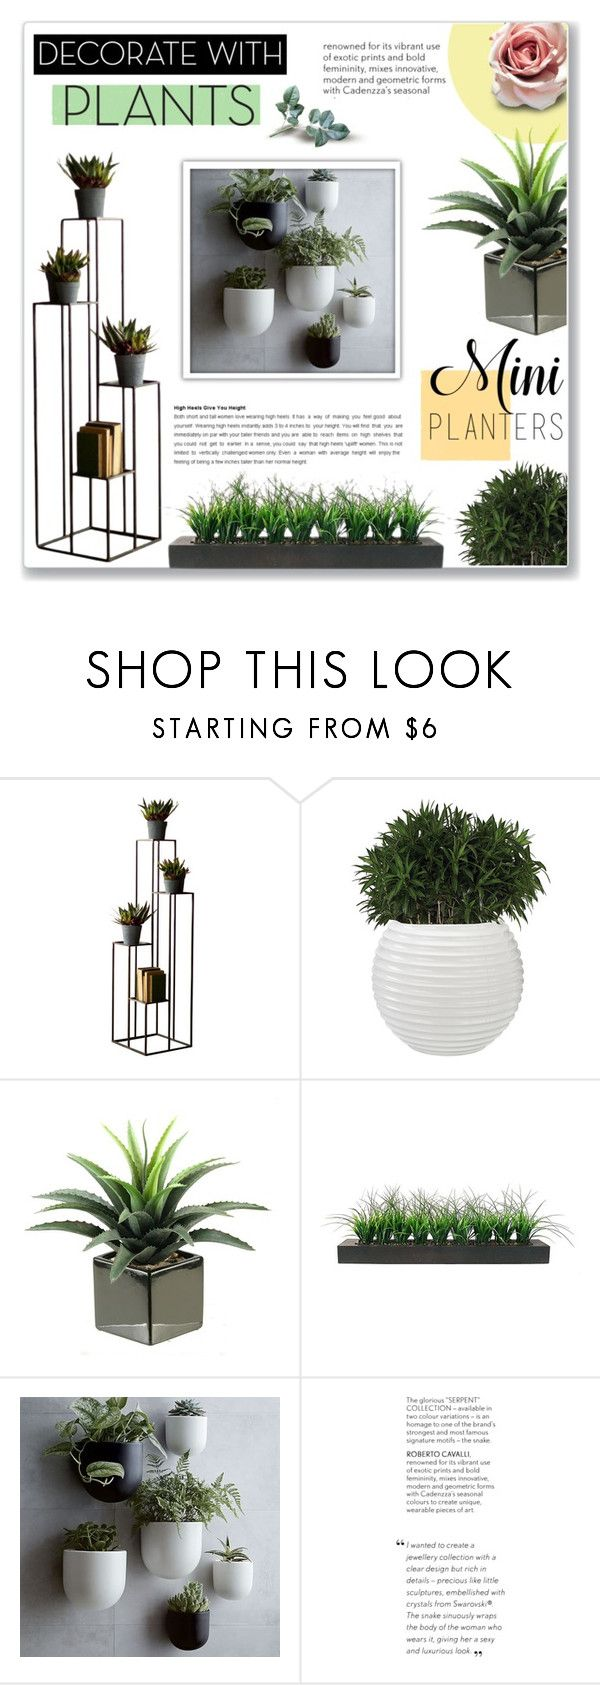 """Decorate With Plants"" by achernar ❤ liked on Polyvore featuring interior, interiors, interior design, home, home decor, interior decorating, Dot & Bo, Vintage, West Elm and plants"